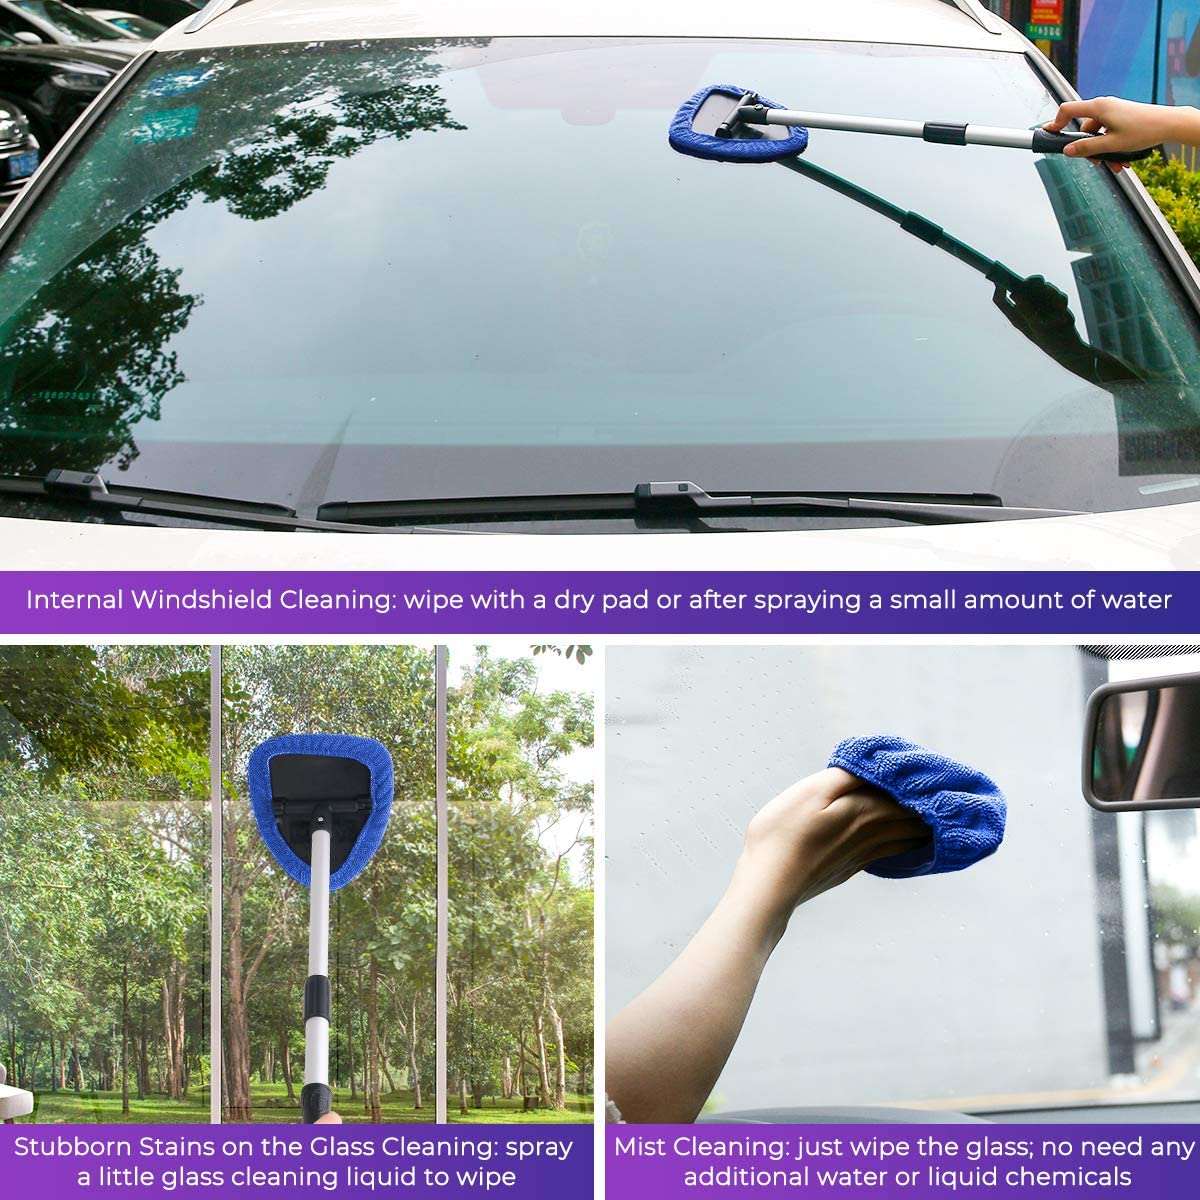 4 Microfiber Pads AstroAI Car Window Cleaner Windshield Cleaning Tool with Detachable Handle Auto Inside Glass Wiper Kit Blue